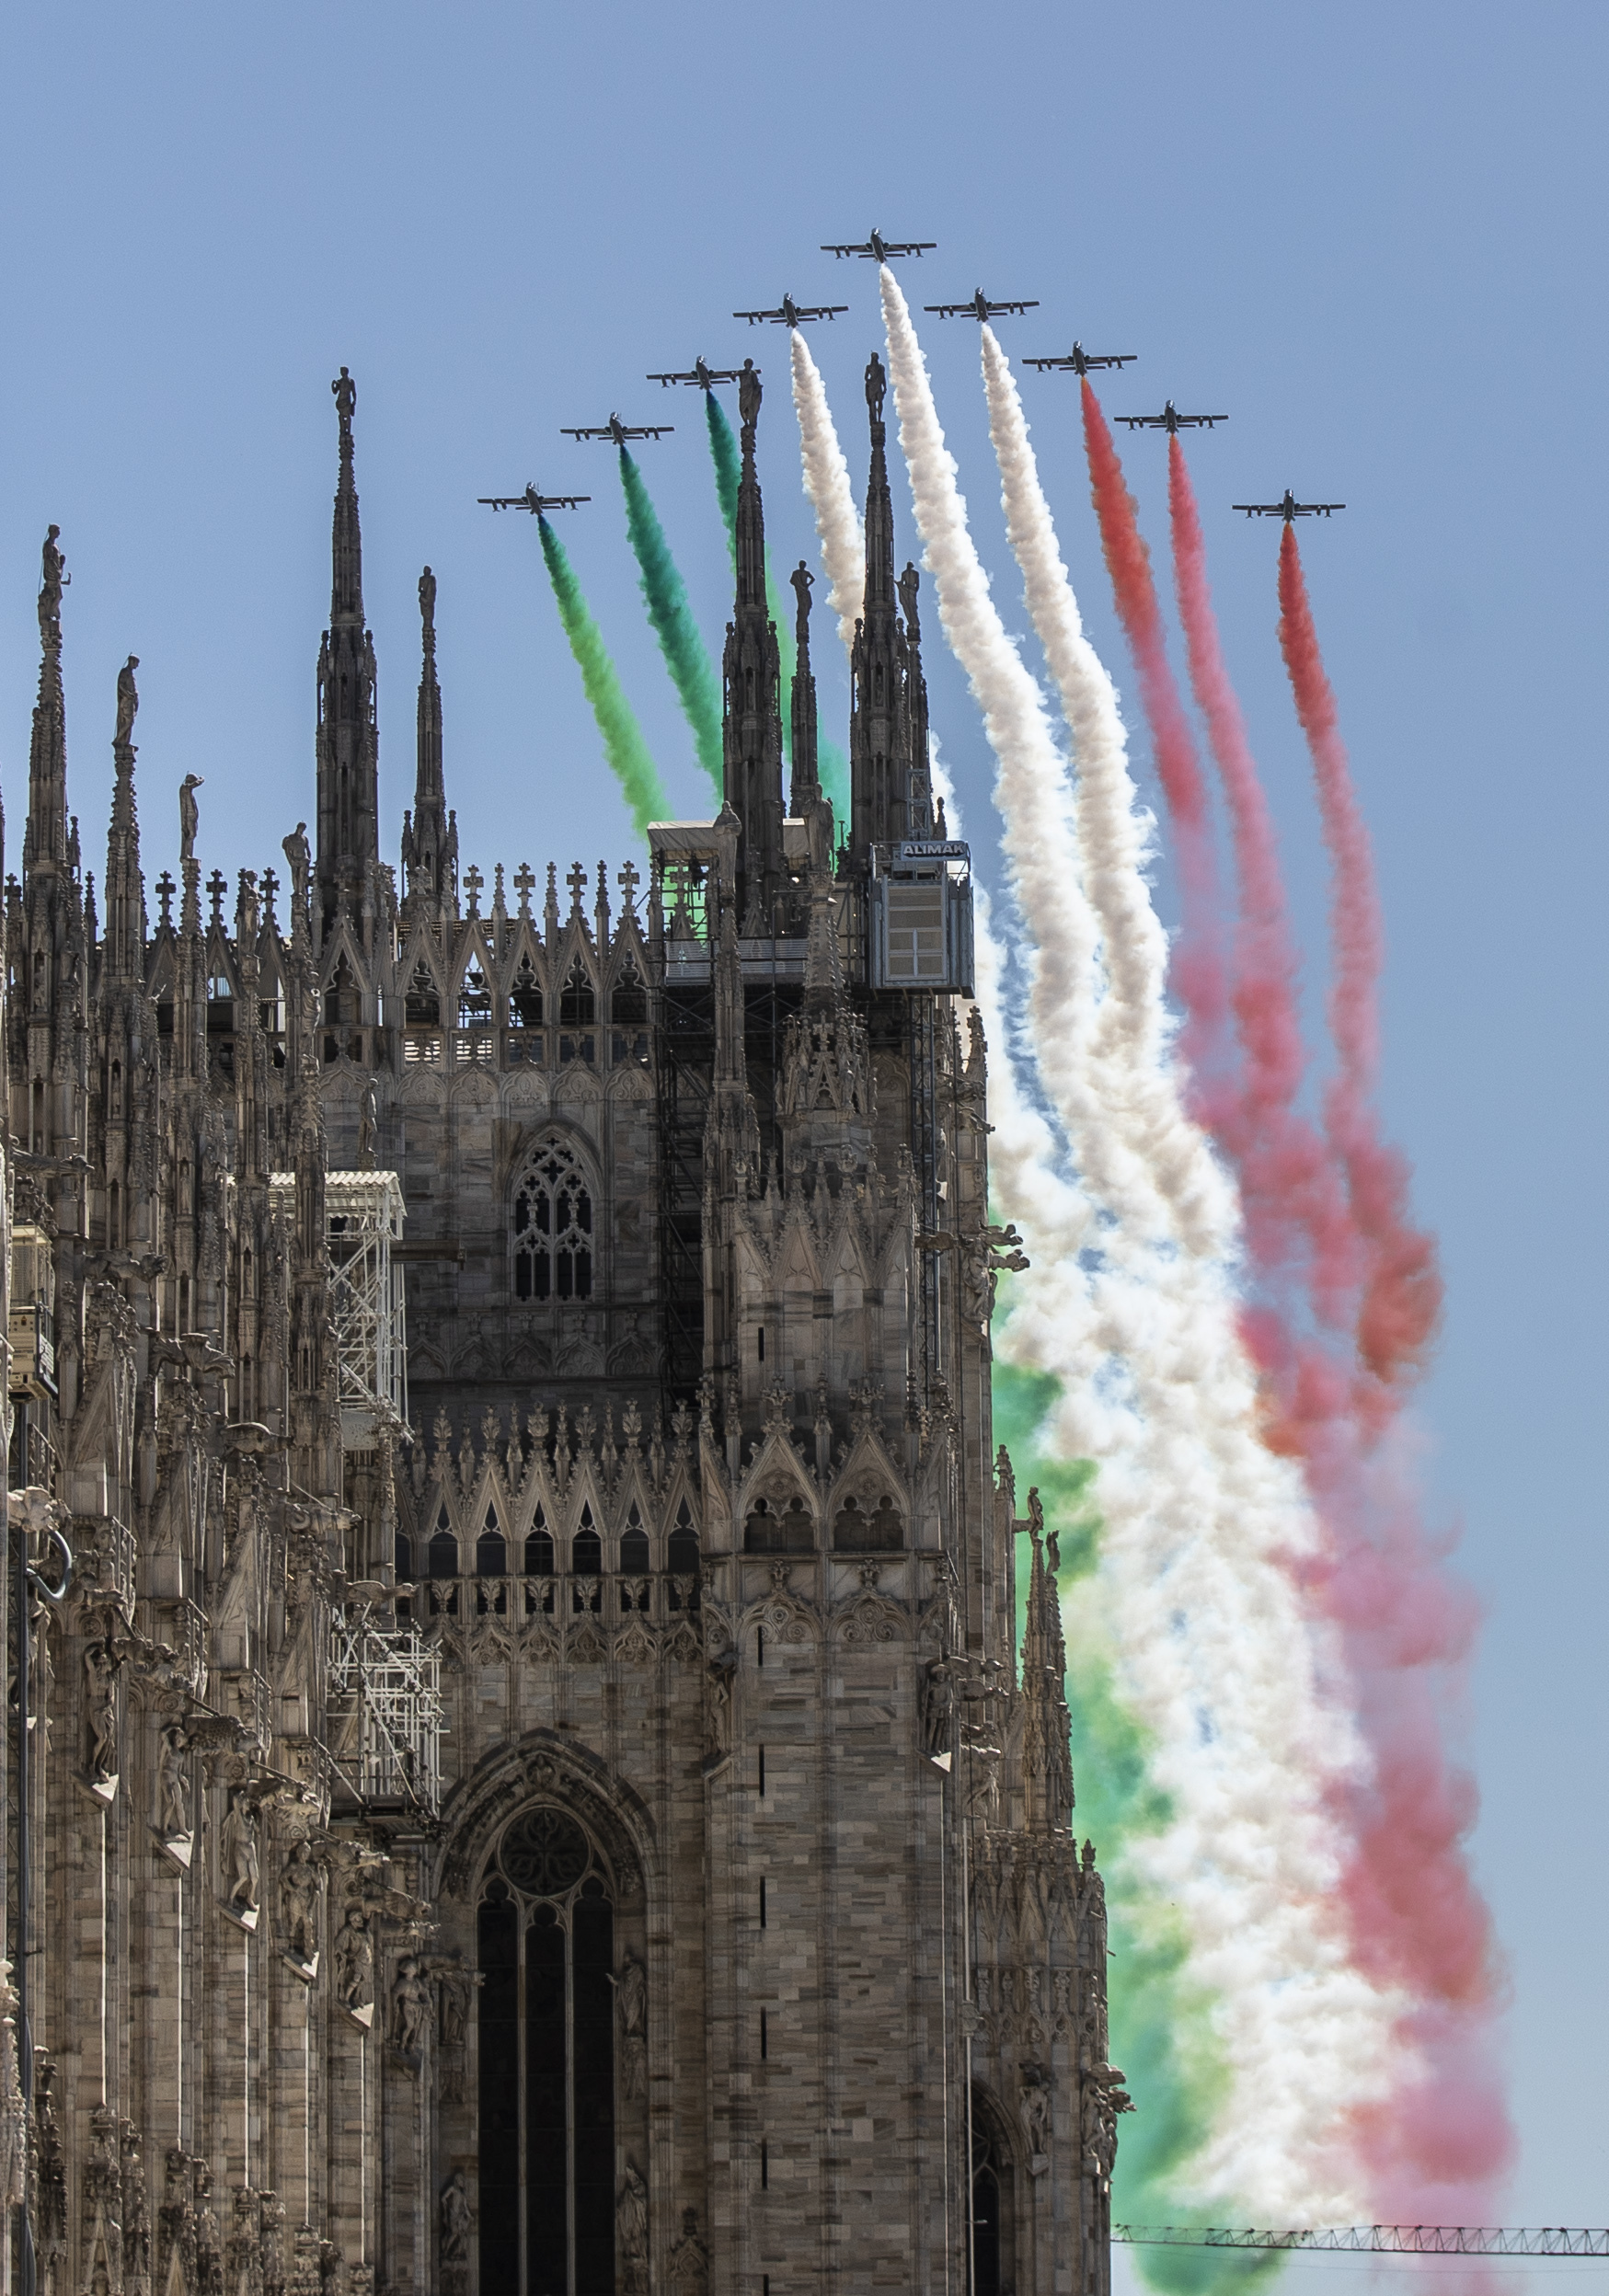 The Frecce Tricolori aerobatic squad of the Italian Air Force flies over Milan's Duomo cathedral, northern Italy, Monday, May 25, 2020 on the occasion of the 74th anniversary of the founding of the Italian Republic on June 2, 1946. This year the acrobatic squad will fly over several Italian cities to bring a message of unity and solidarity during the coronavirus pandemic.(AP Photo/Luca Bruno)